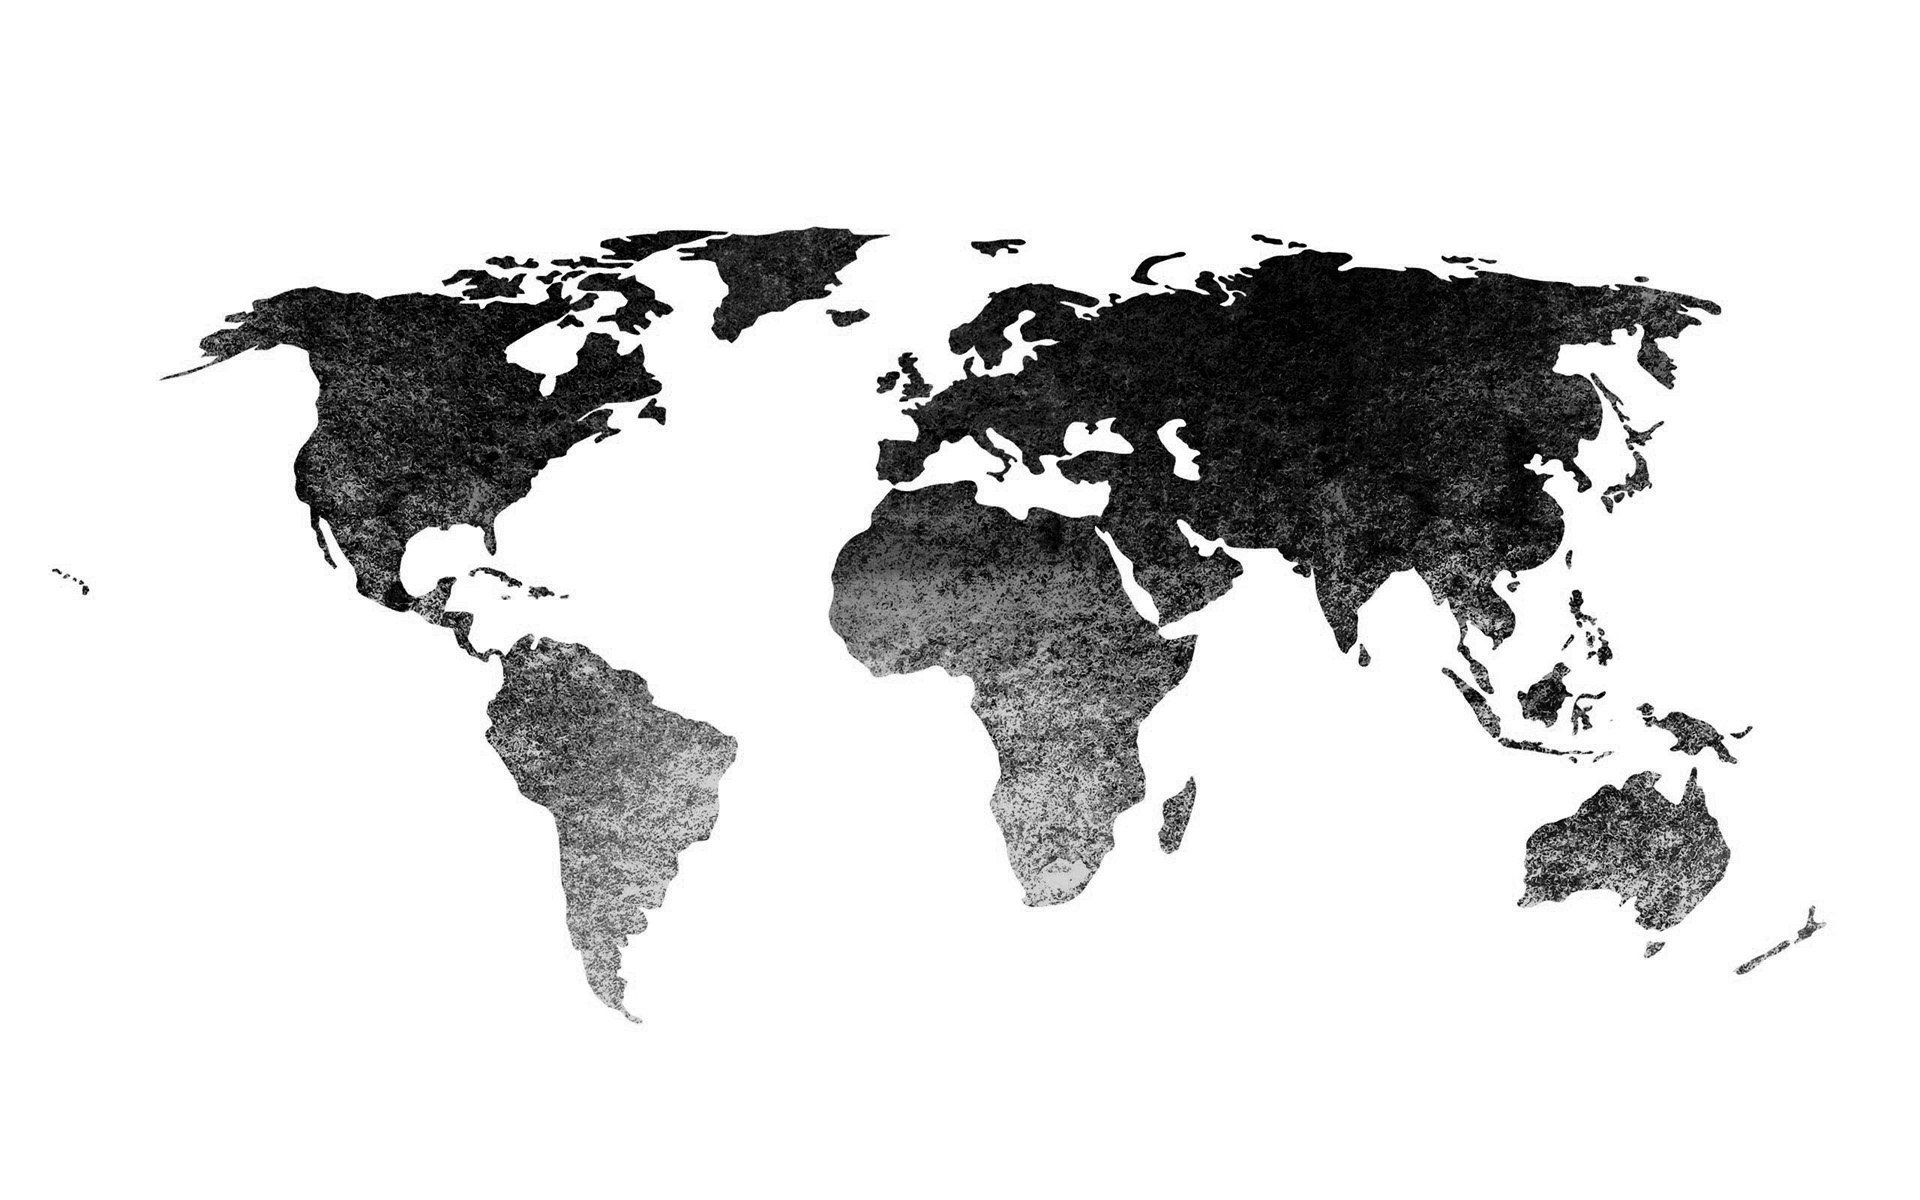 Black world map wallpapers high resolution for free wallpaper black world map wallpapers high resolution for free wallpaper gumiabroncs Image collections